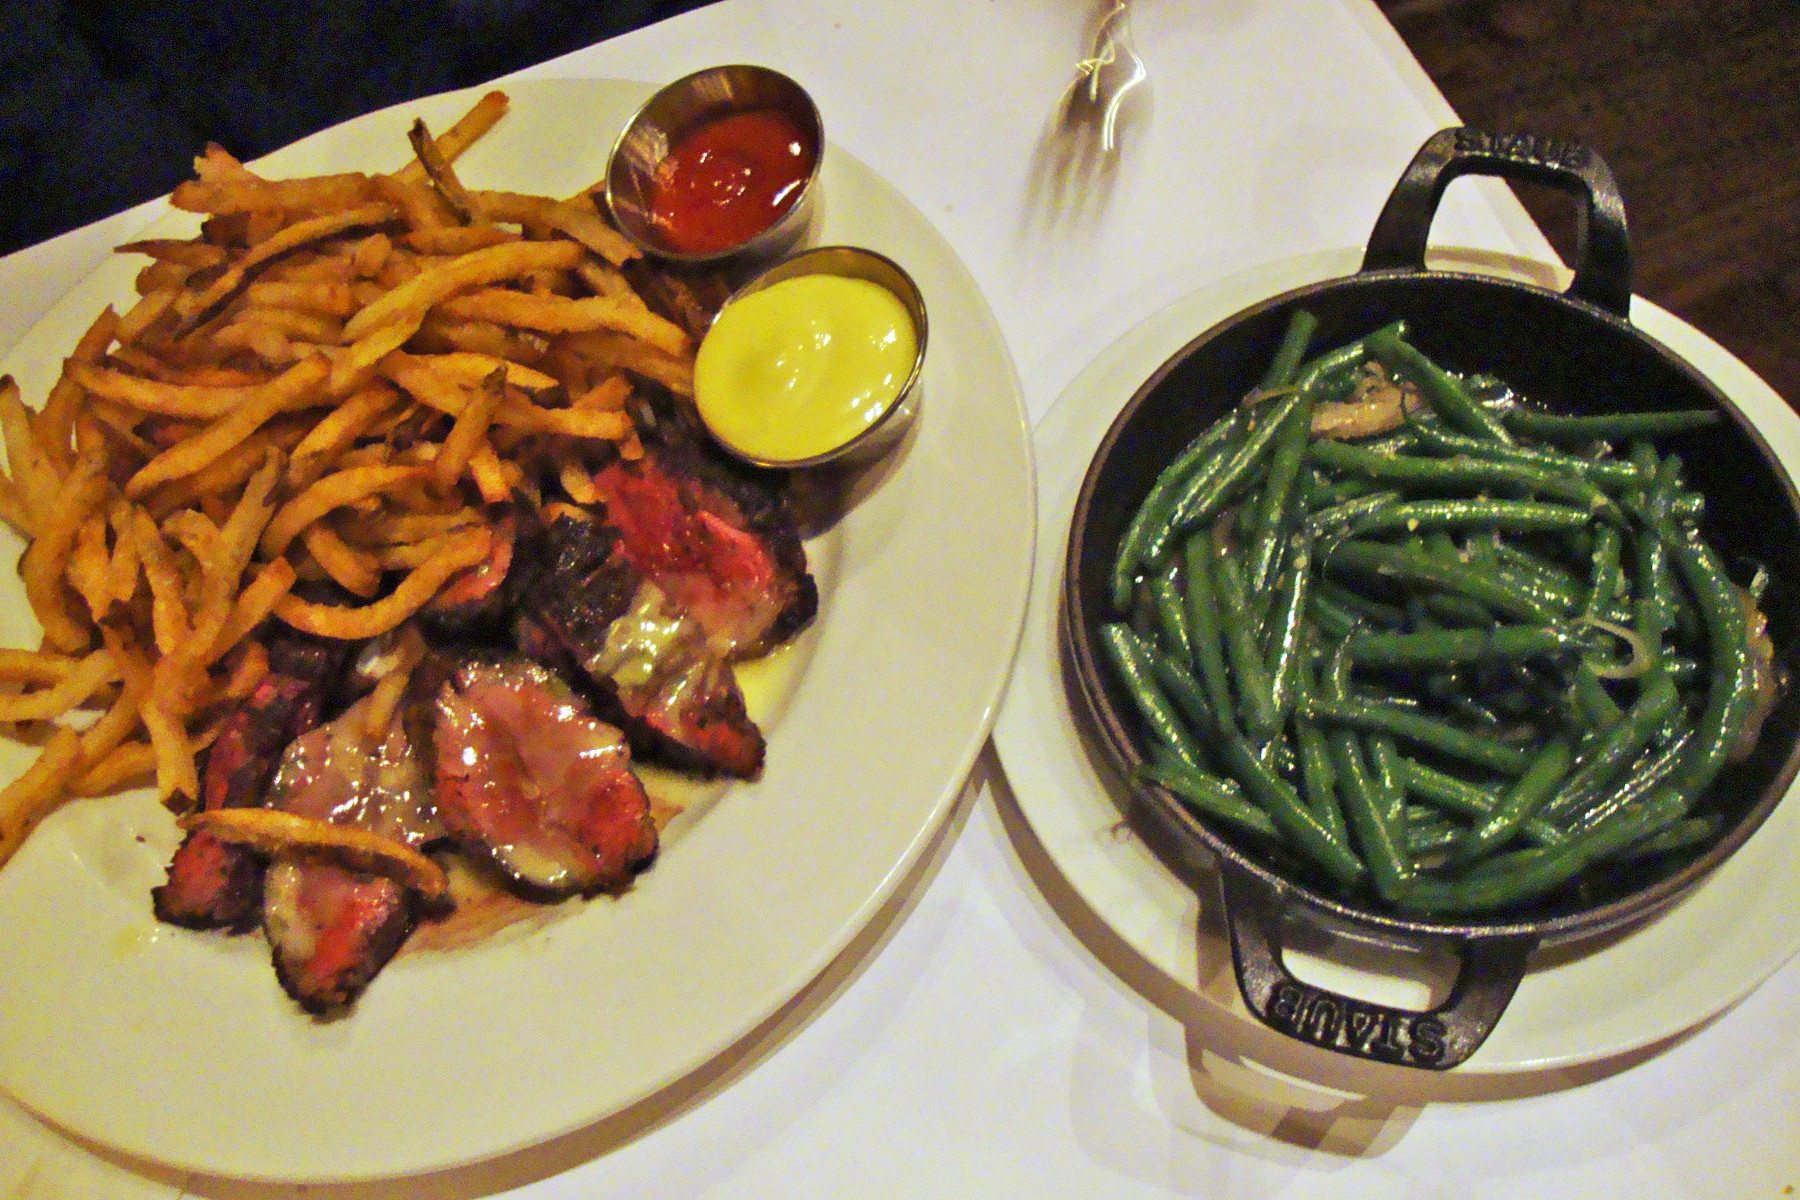 The steak frites — a perfectly cooked hangar steak with a salty, seared crust, served with a tower of thinly cut, crisp frites fried in duck fat for extra flavor — are an Orsay dinner staple.